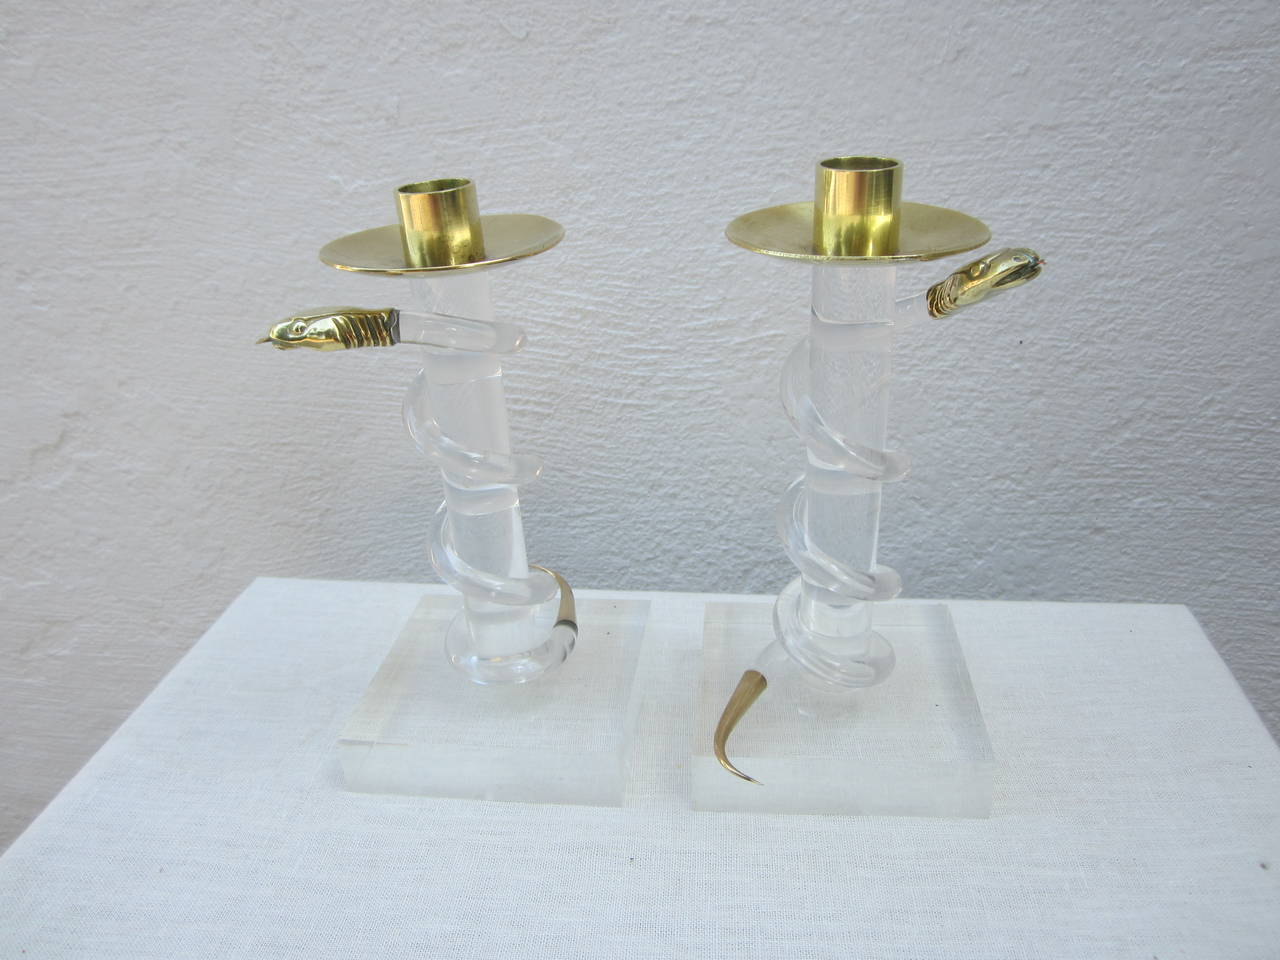 Pair of Brass and Lucite Candlesticks by Allesandro Albrizzi For Sale 3